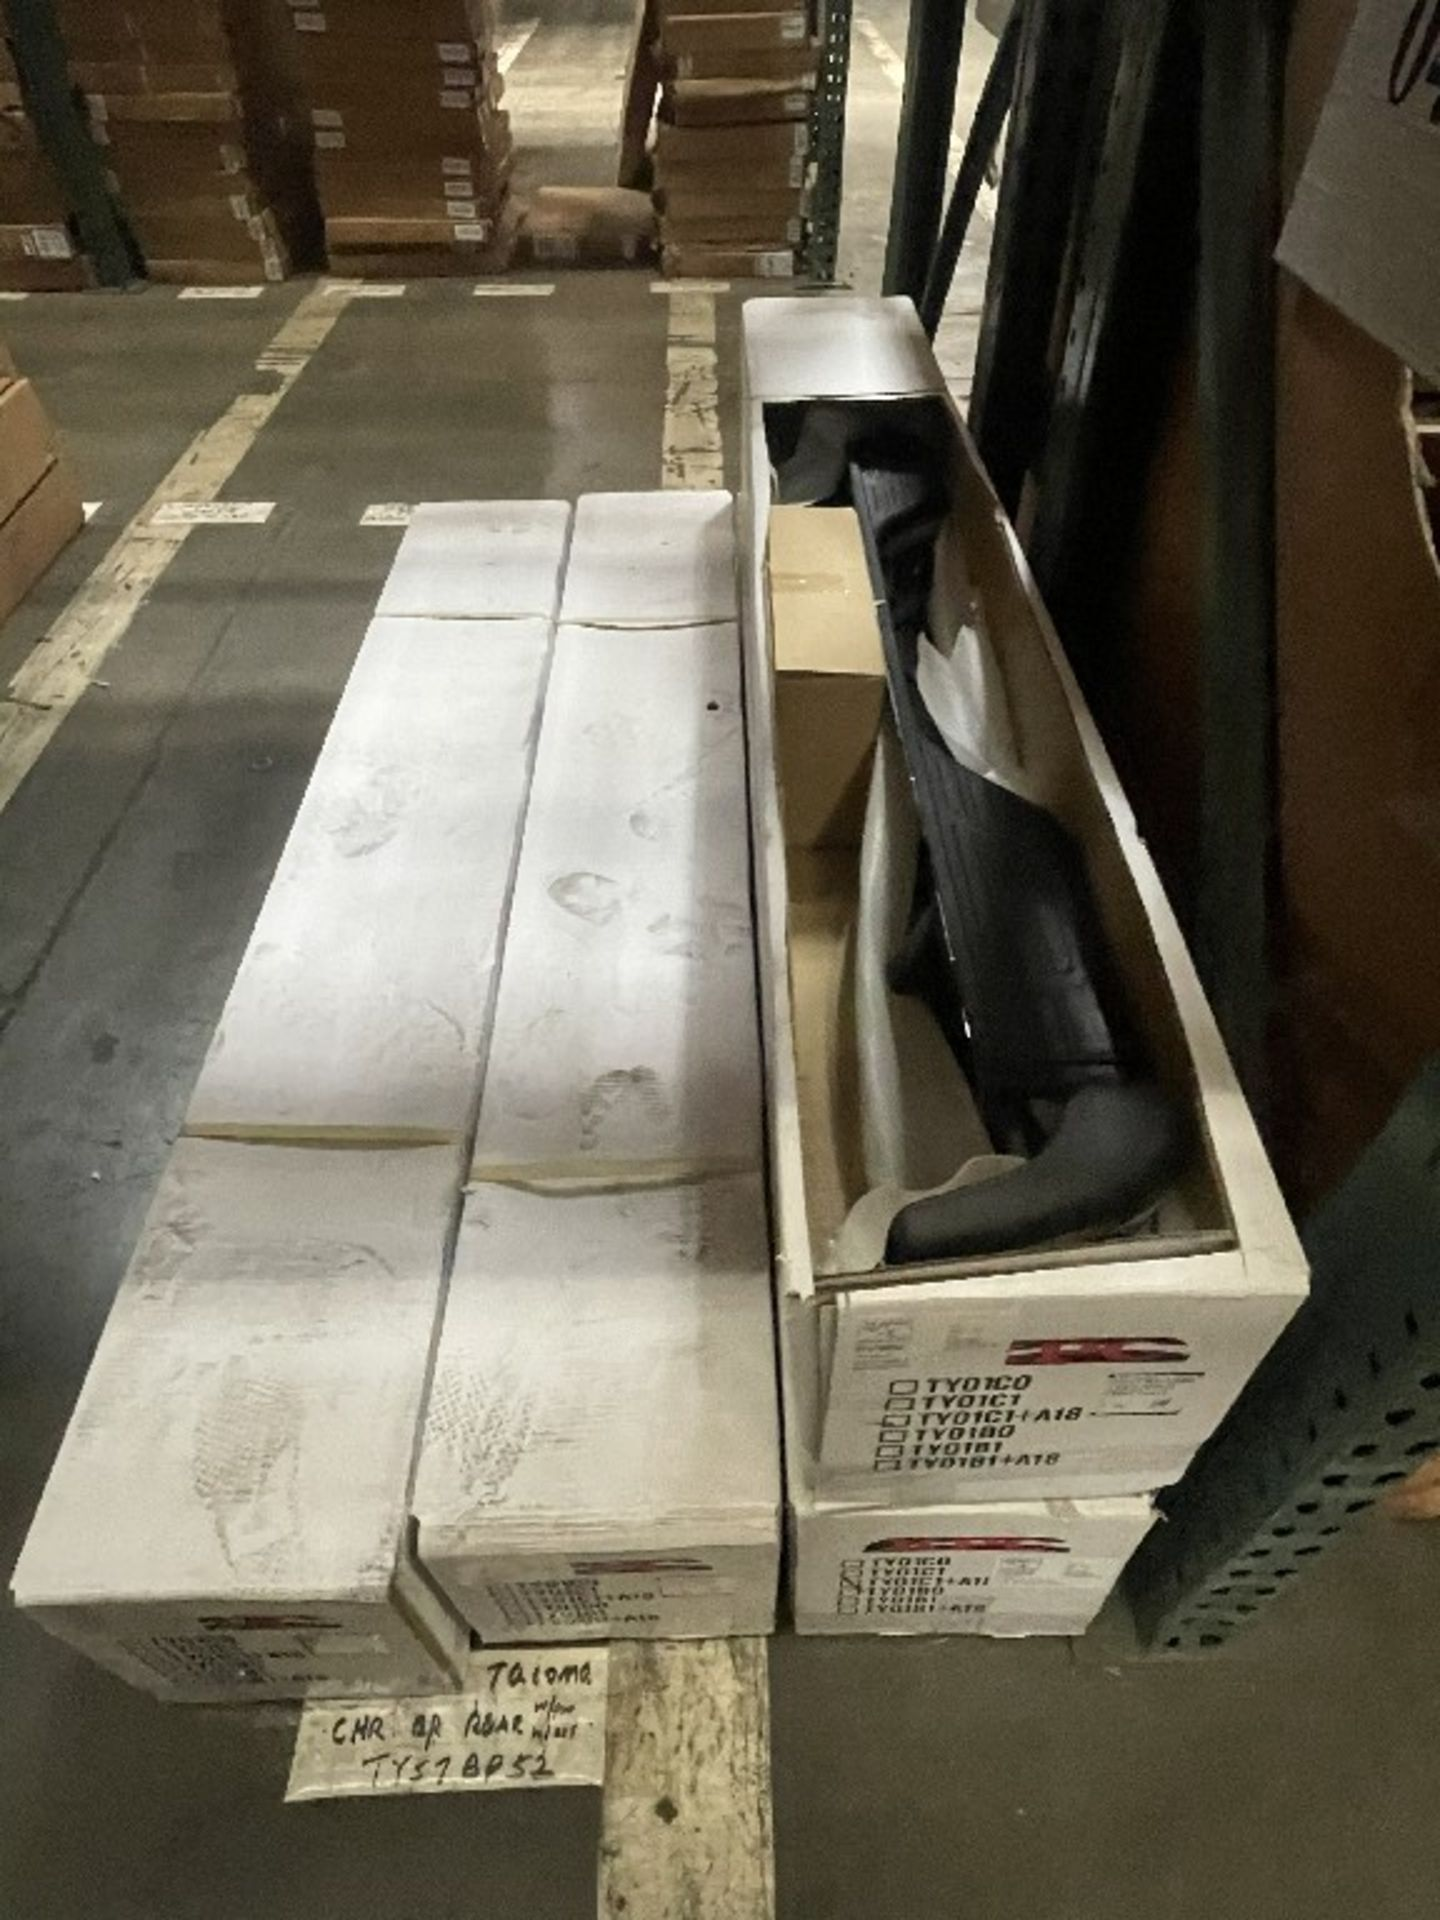 (2 SECTIONS) ASST REAR BUMPERS TACOMA - Image 3 of 3